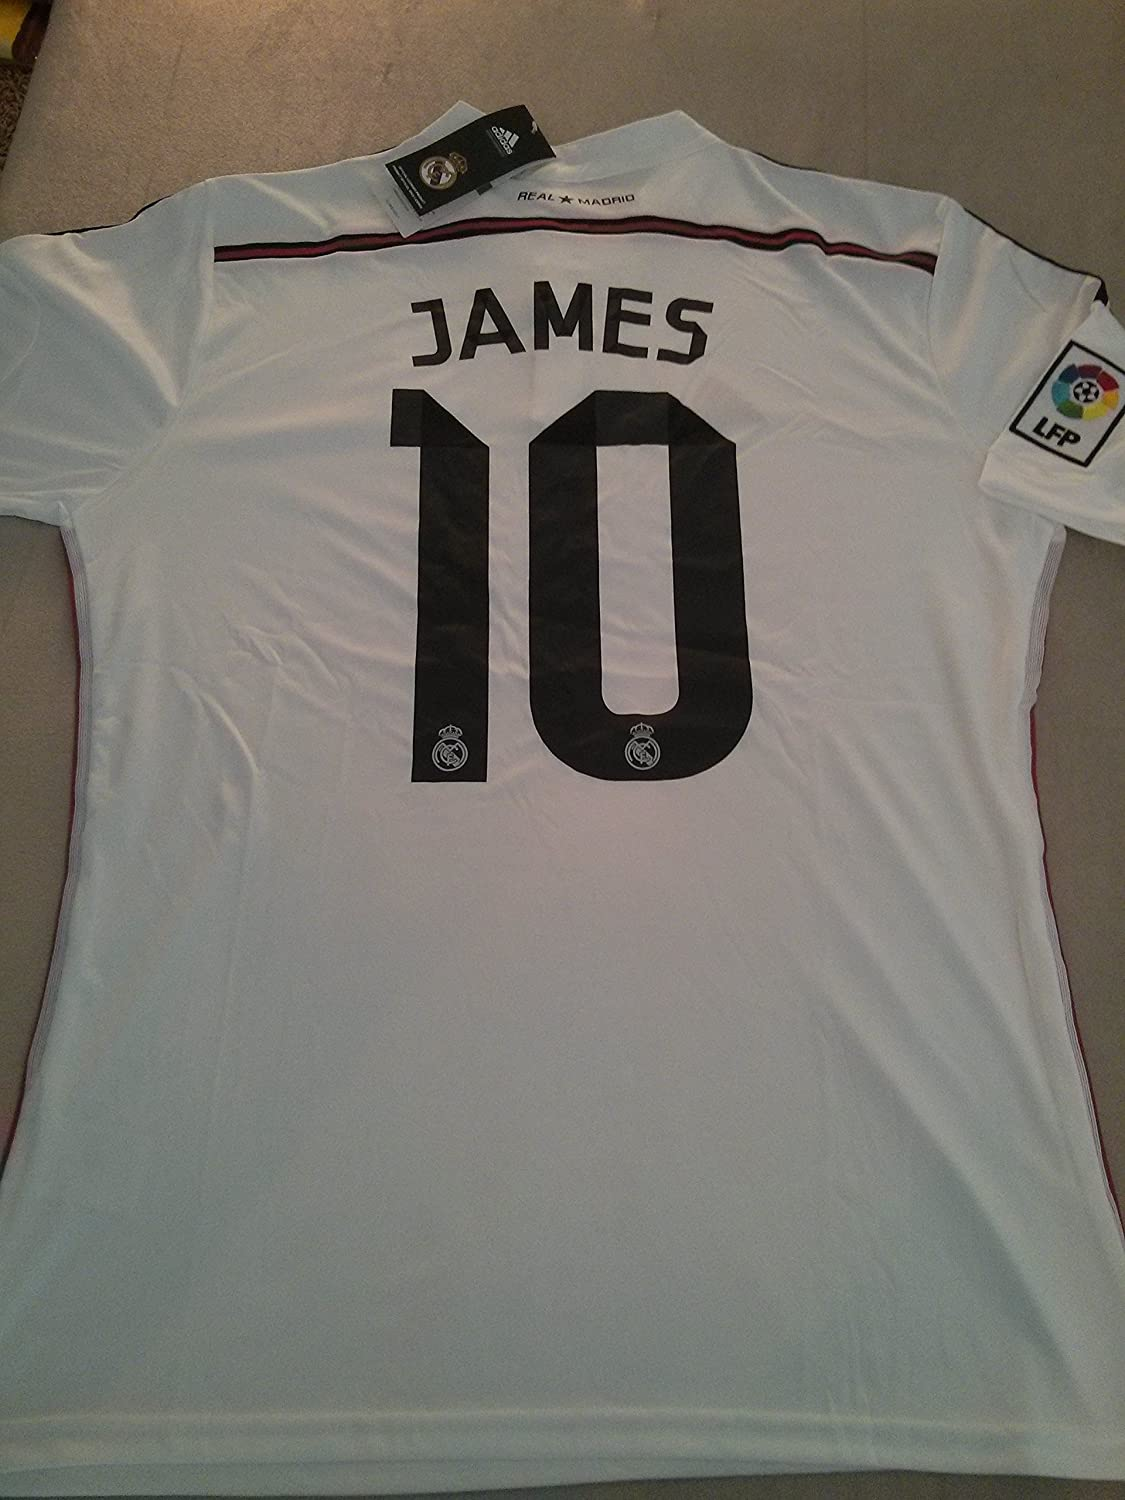 Adidas James #10 Real Madrid Home Jersey 2015(Authentic name and number of player)/サッカーユニフォーム レアルマドリード ホーム用 背番号10 ハメス 2015 (XL) B00M7IFKTO